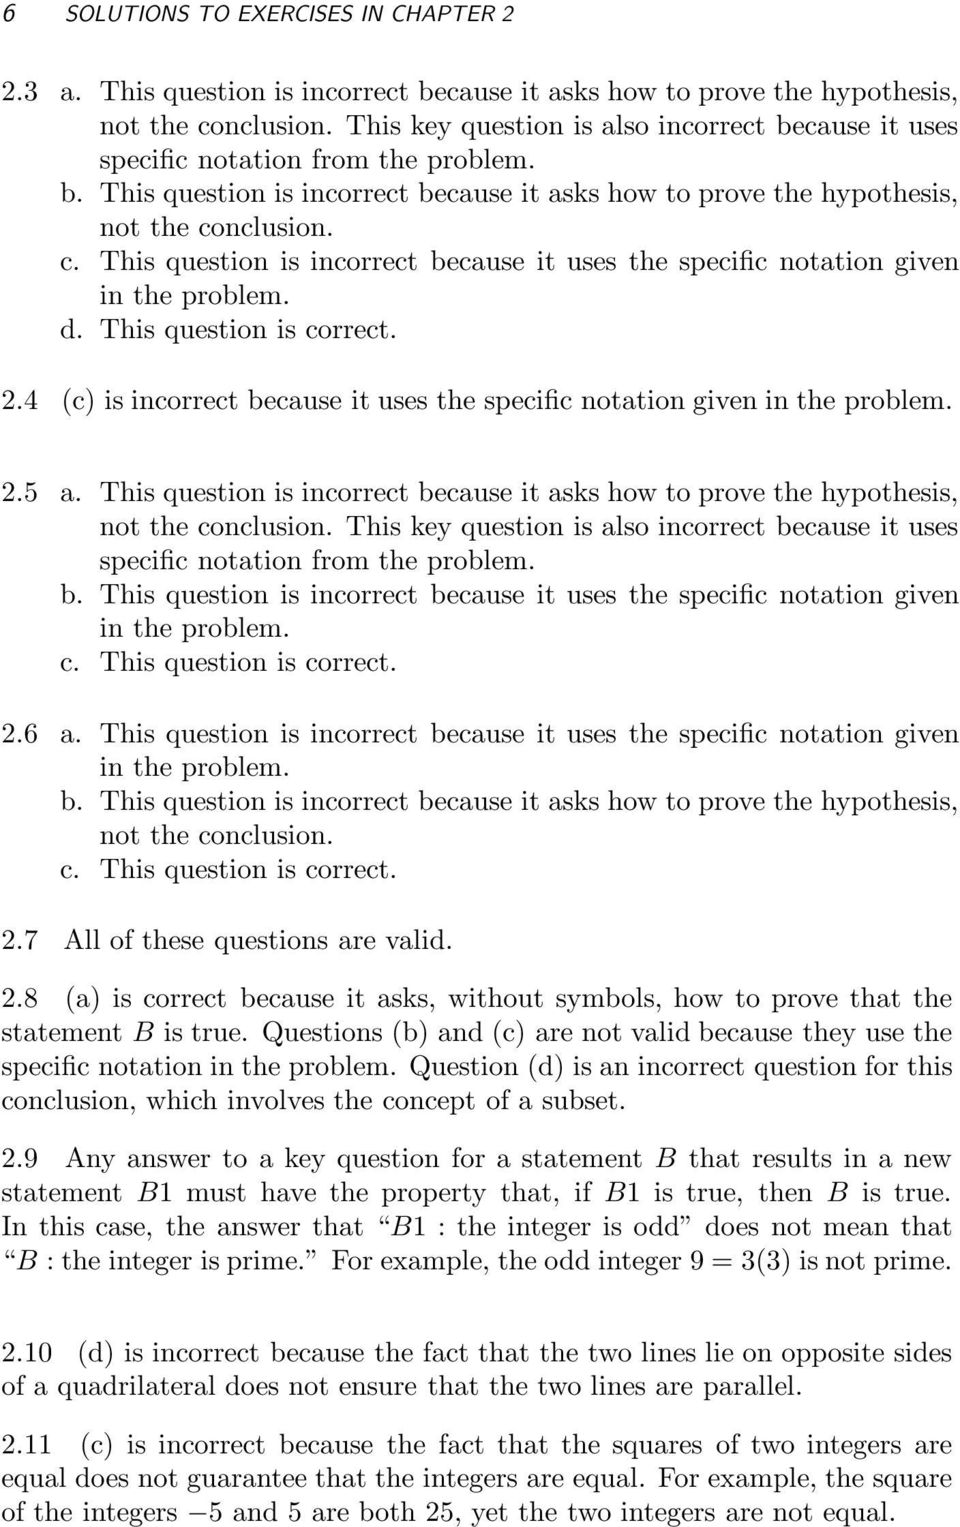 nclusion. c. This question is incorrect because it uses the specific  notation given in